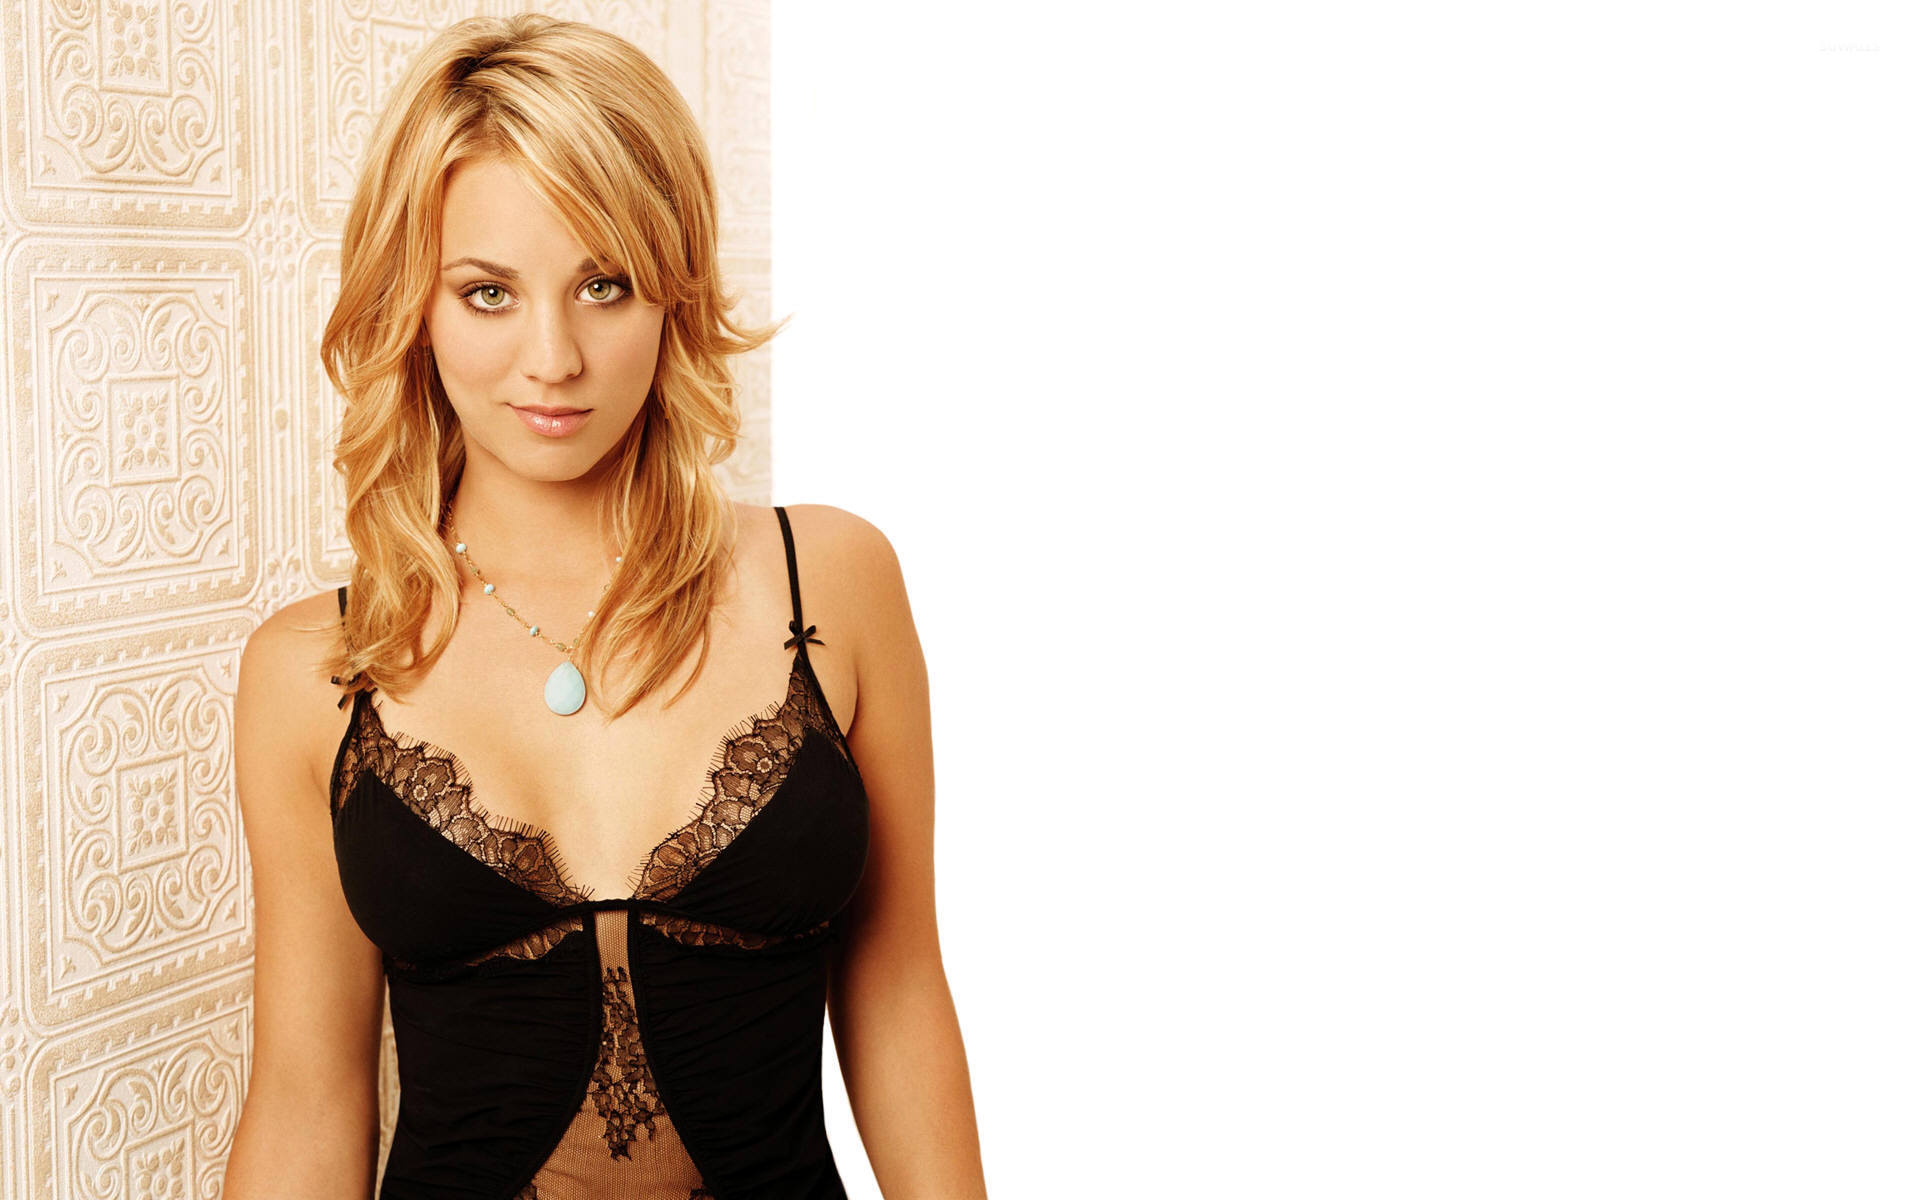 kaley cuoco Celebrity - onlyhdwallpapers.com